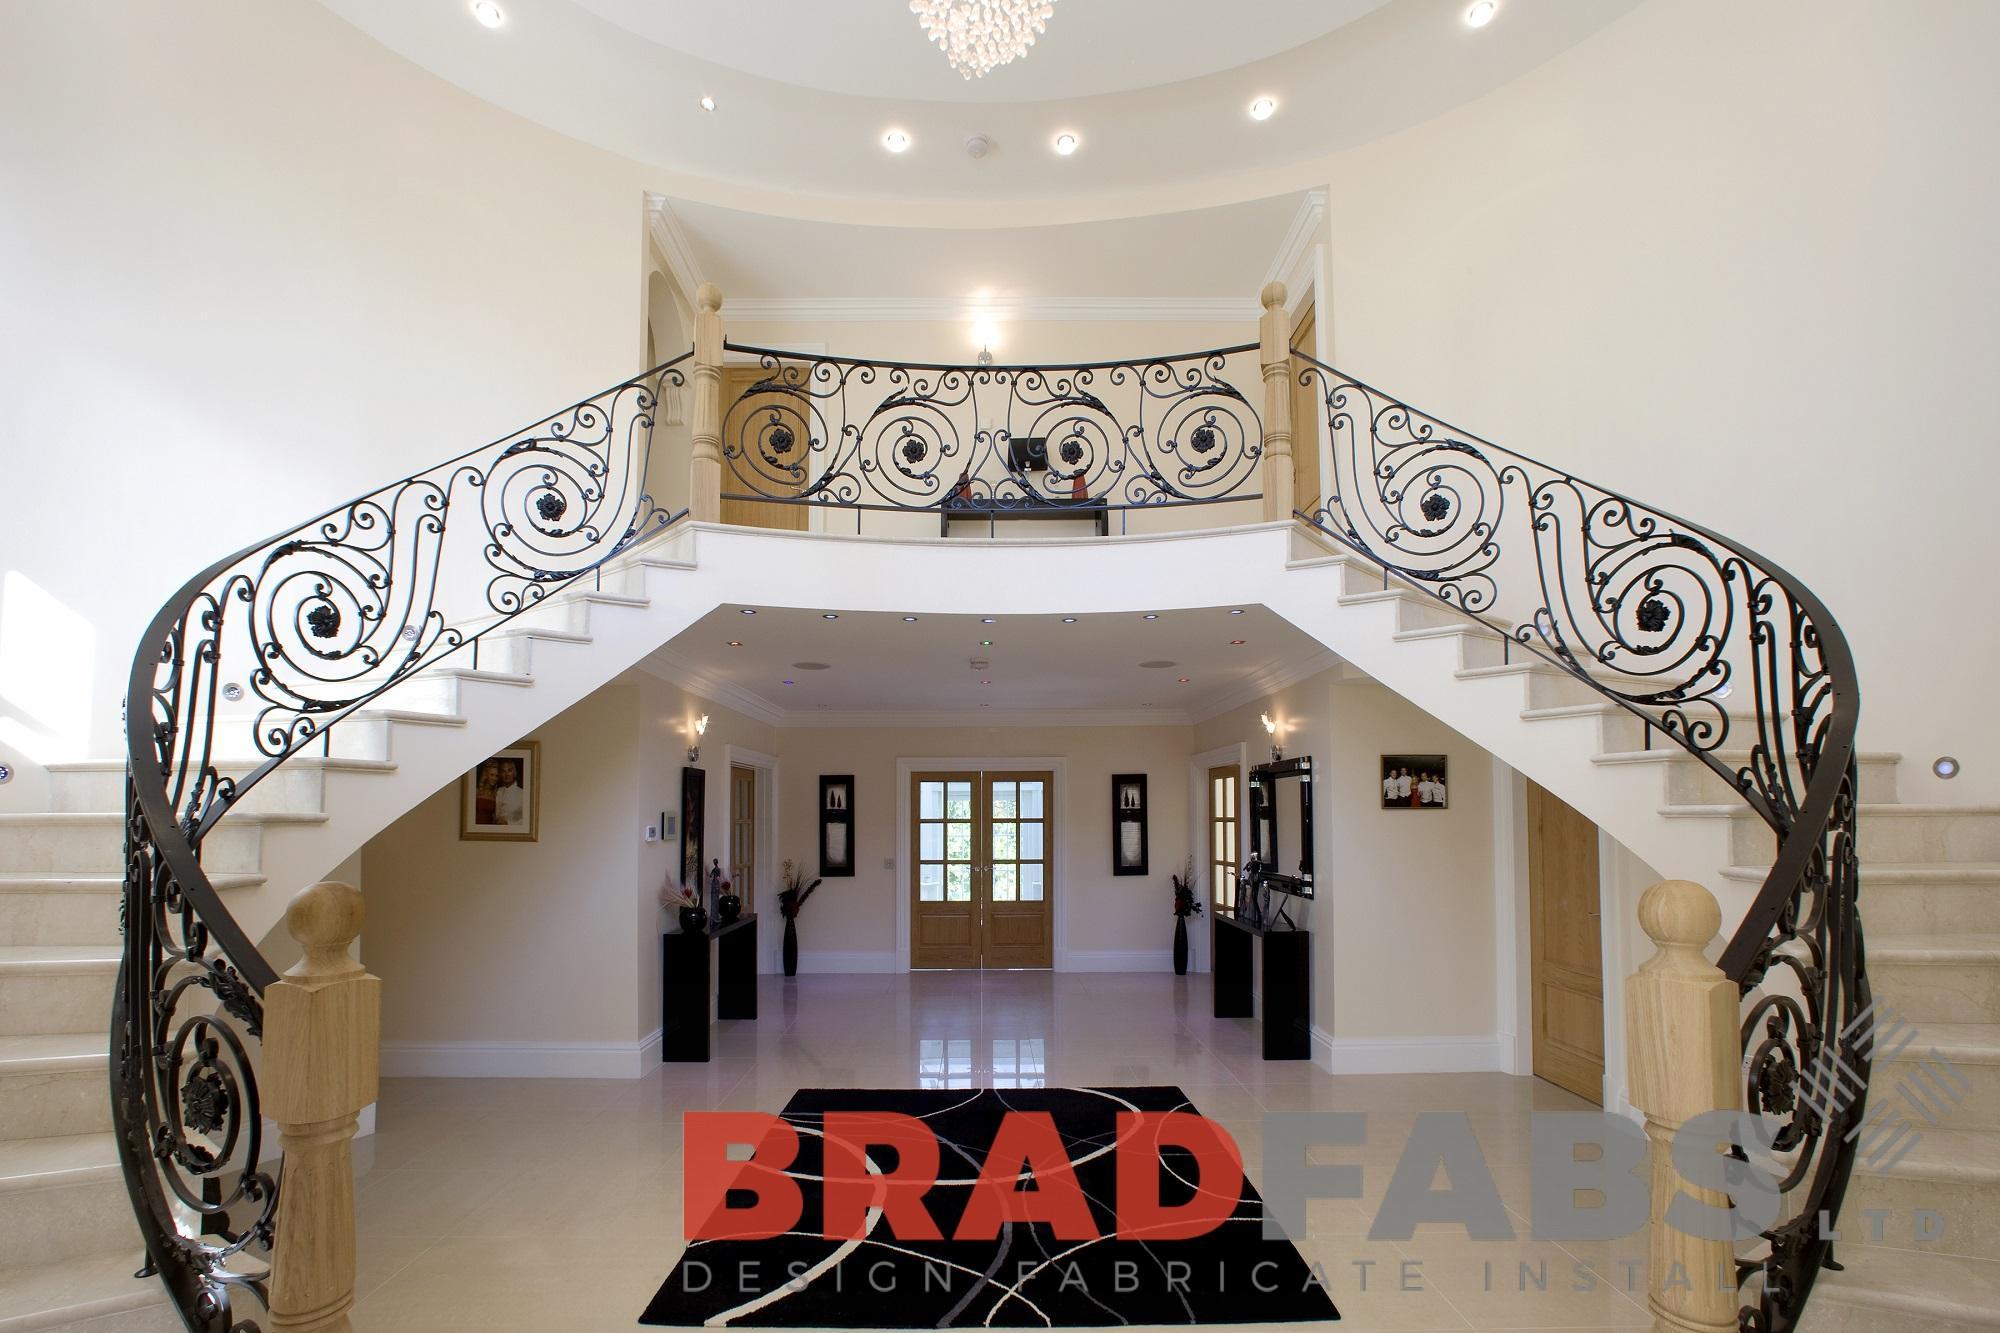 Impress Your Guests with a Curved Staircase From Bradfabs